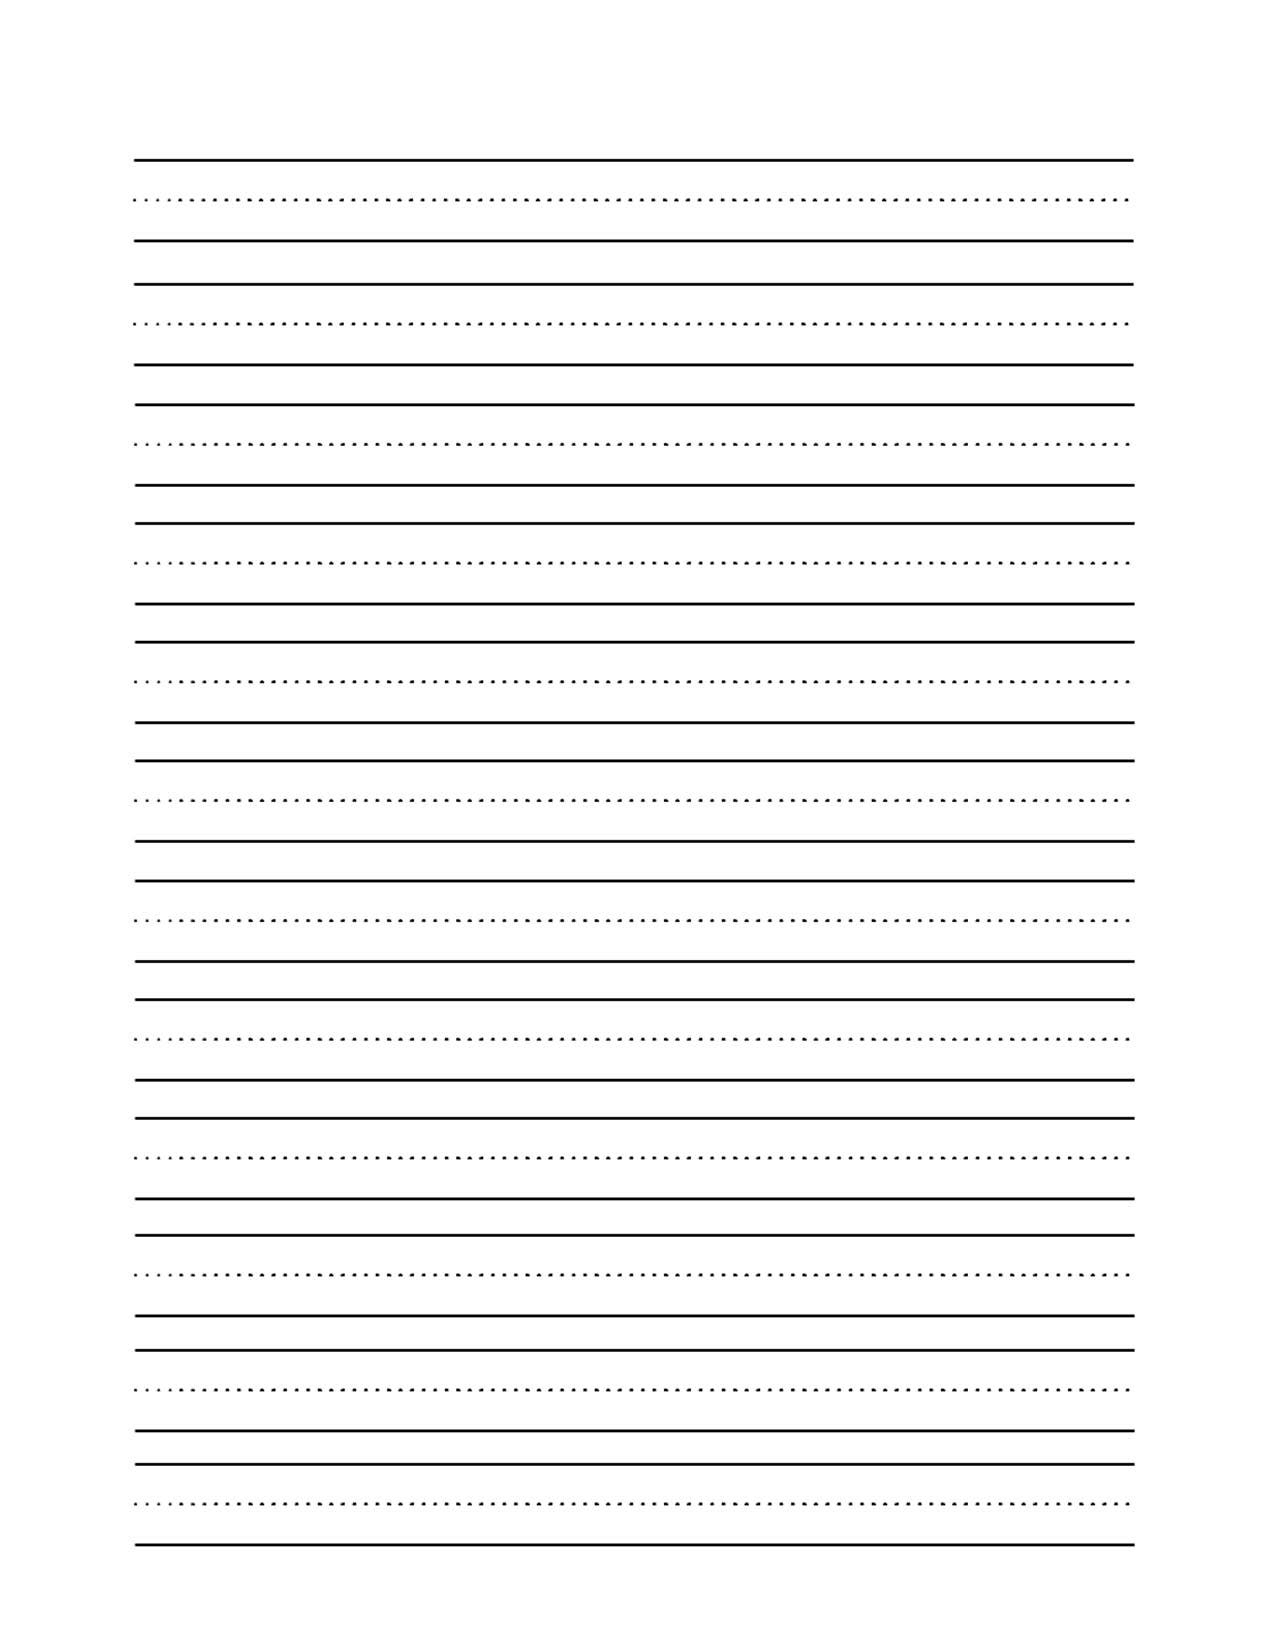 Writing Sheets Term Paper Example - March 2019 - 1454 Words - Blank Handwriting Worksheets Printable Free